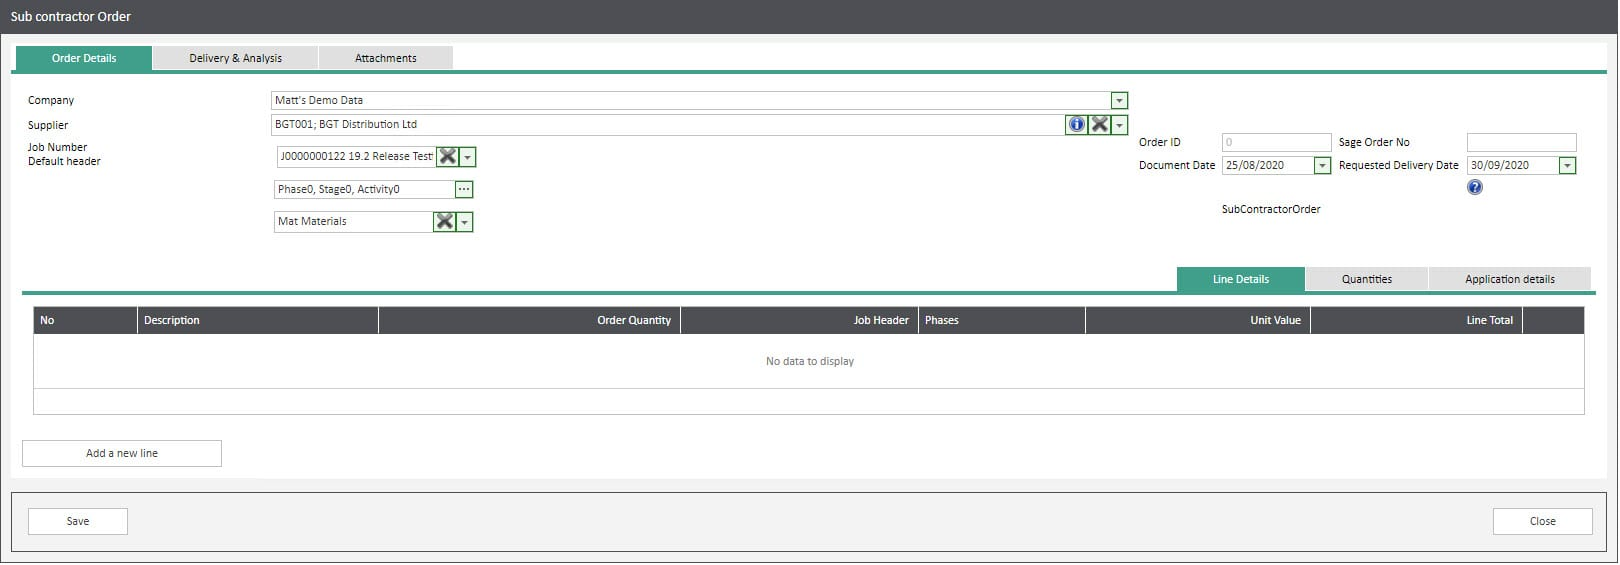 Sicon WAP System Settings Help and User Guide - WAP System HUG Section 46.1 Image 1